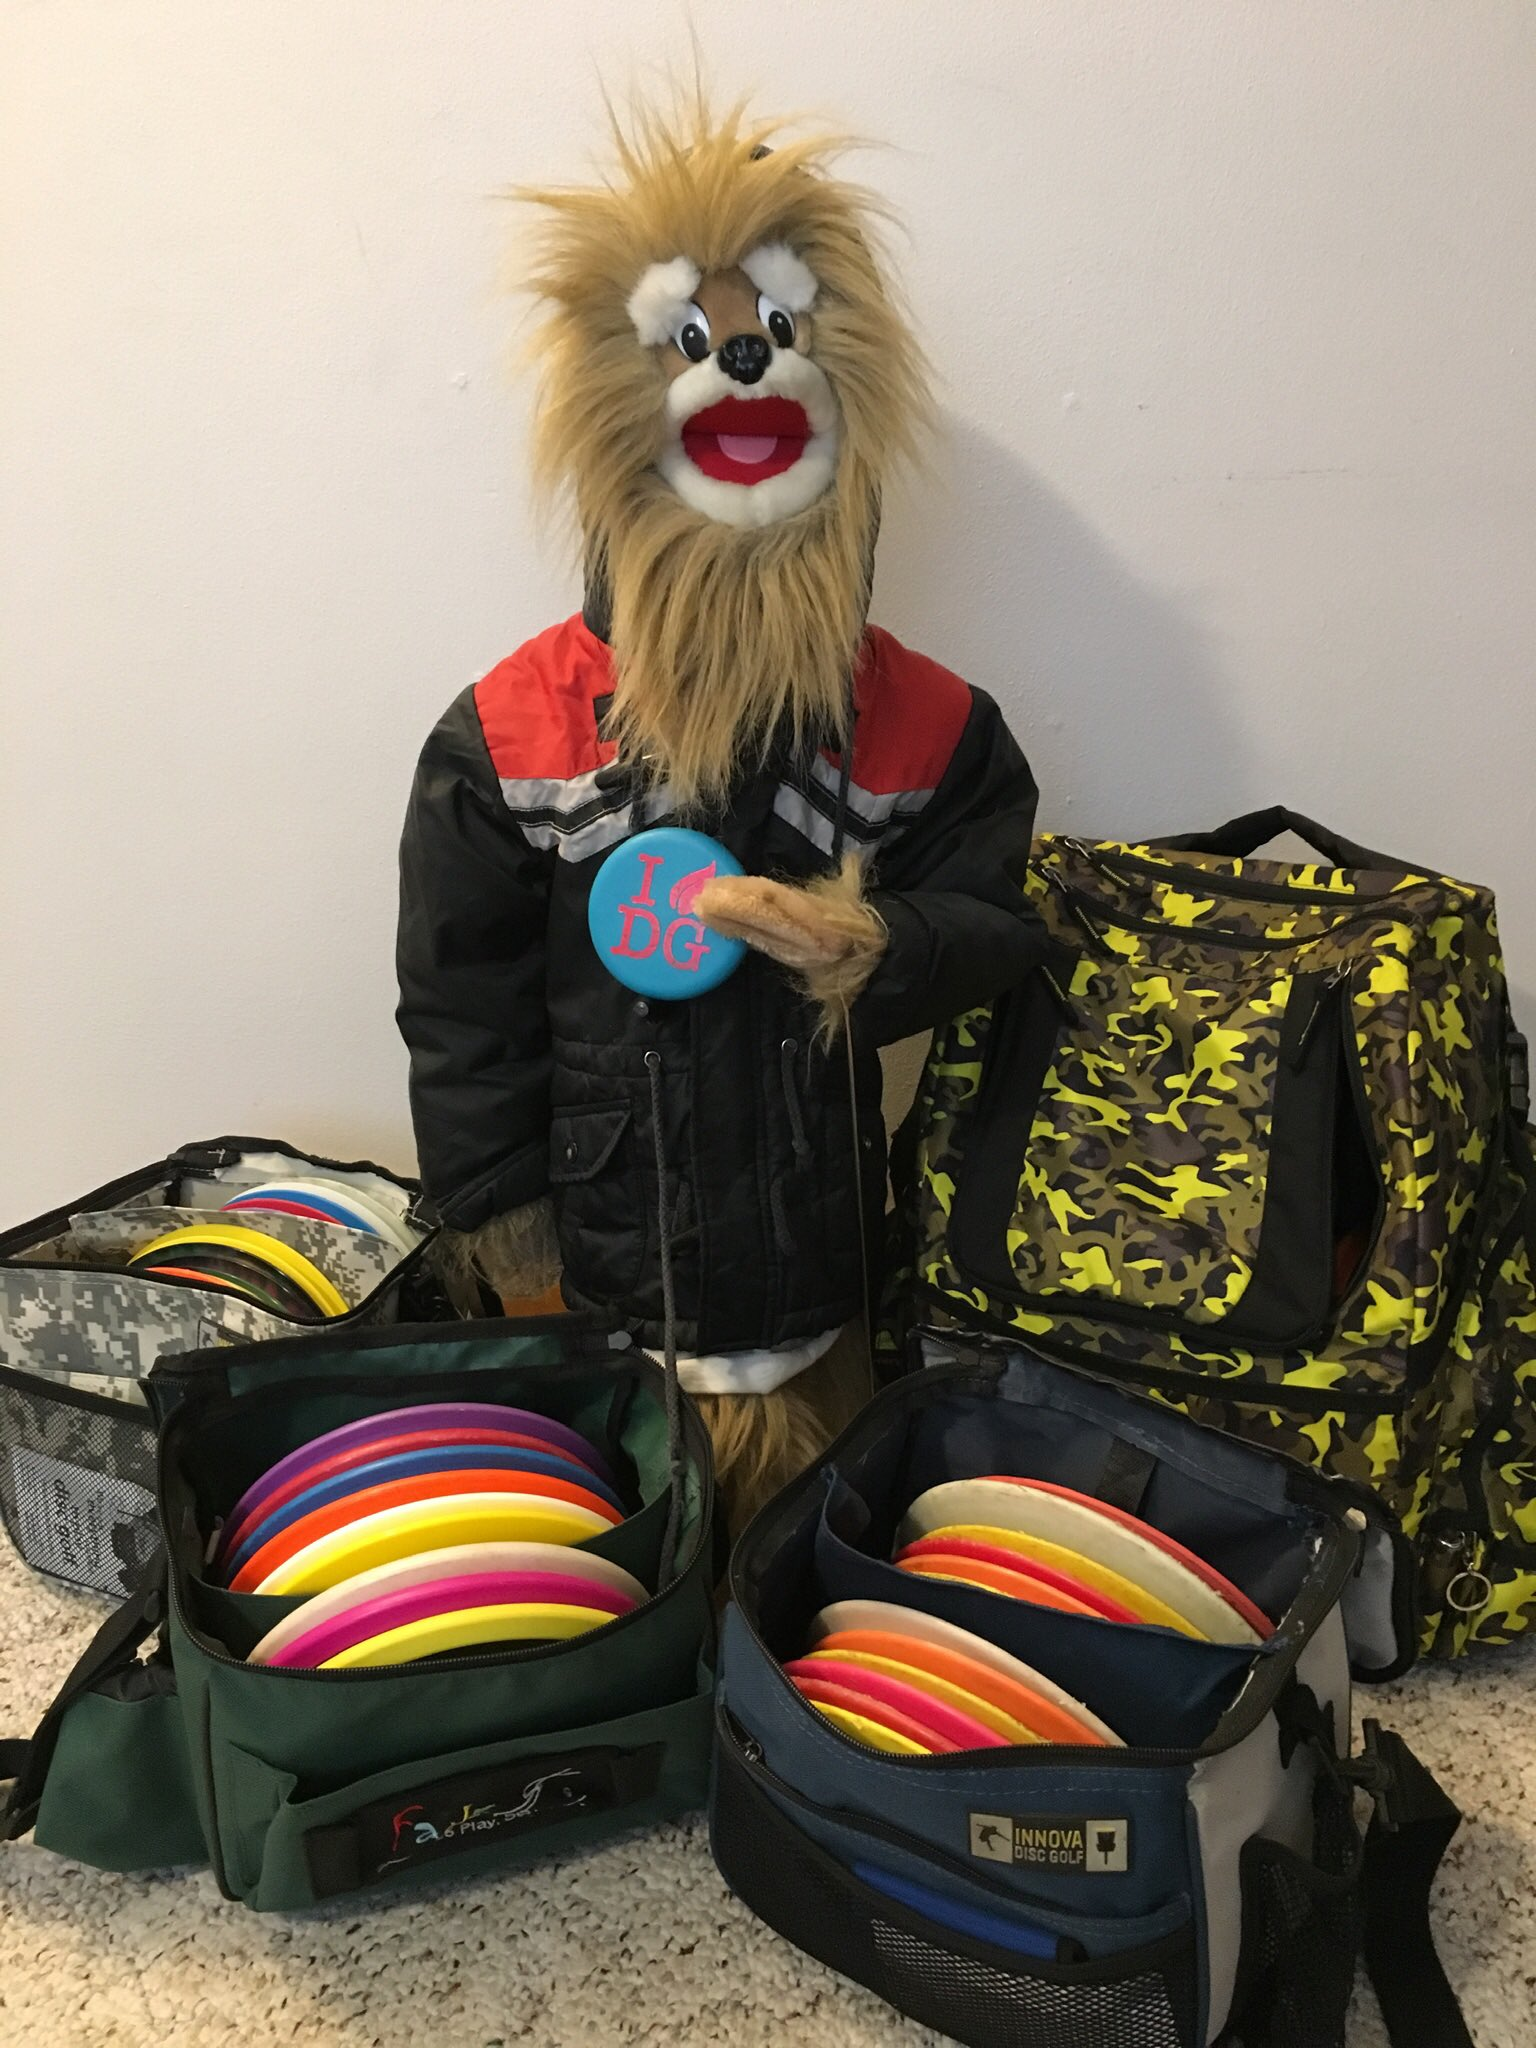 Dude, I am ready to play a round of disc golf! Unfortunately, a large snowstorm is about to hit Minnesota. Bummer! #discgolf https://t.co/2ElyhiUIQ8